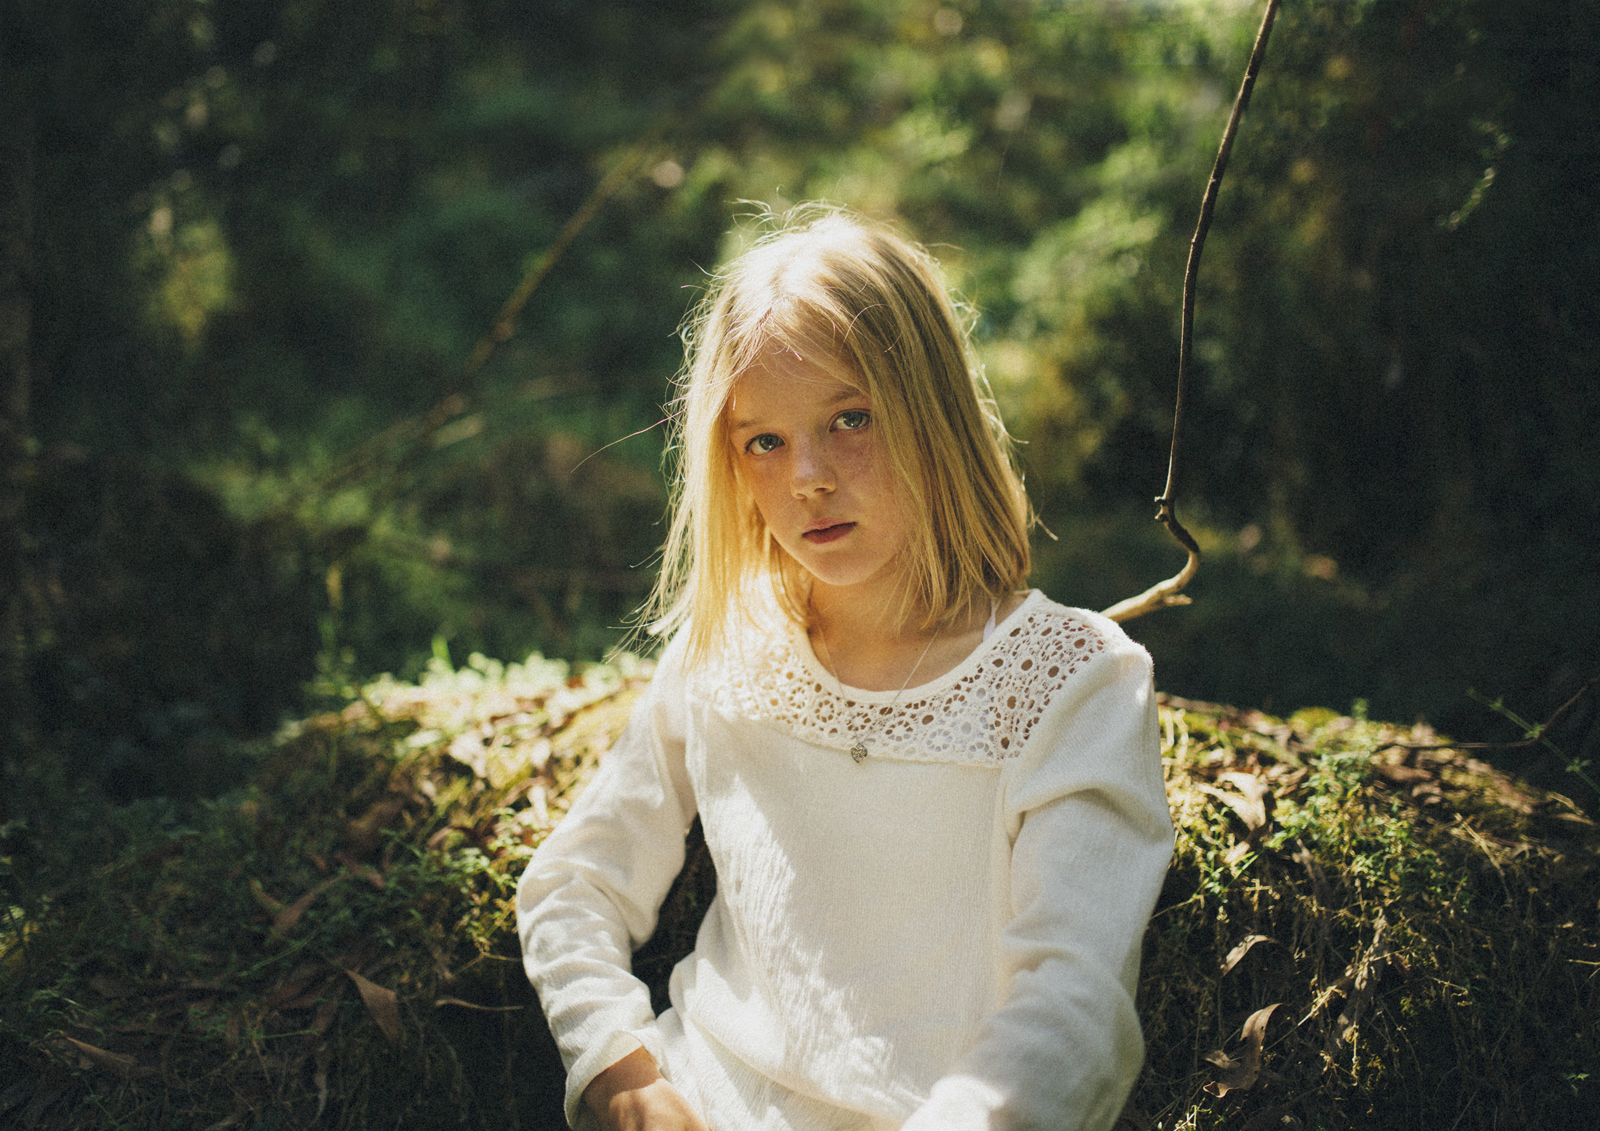 Natural Children's Photography Melbourne